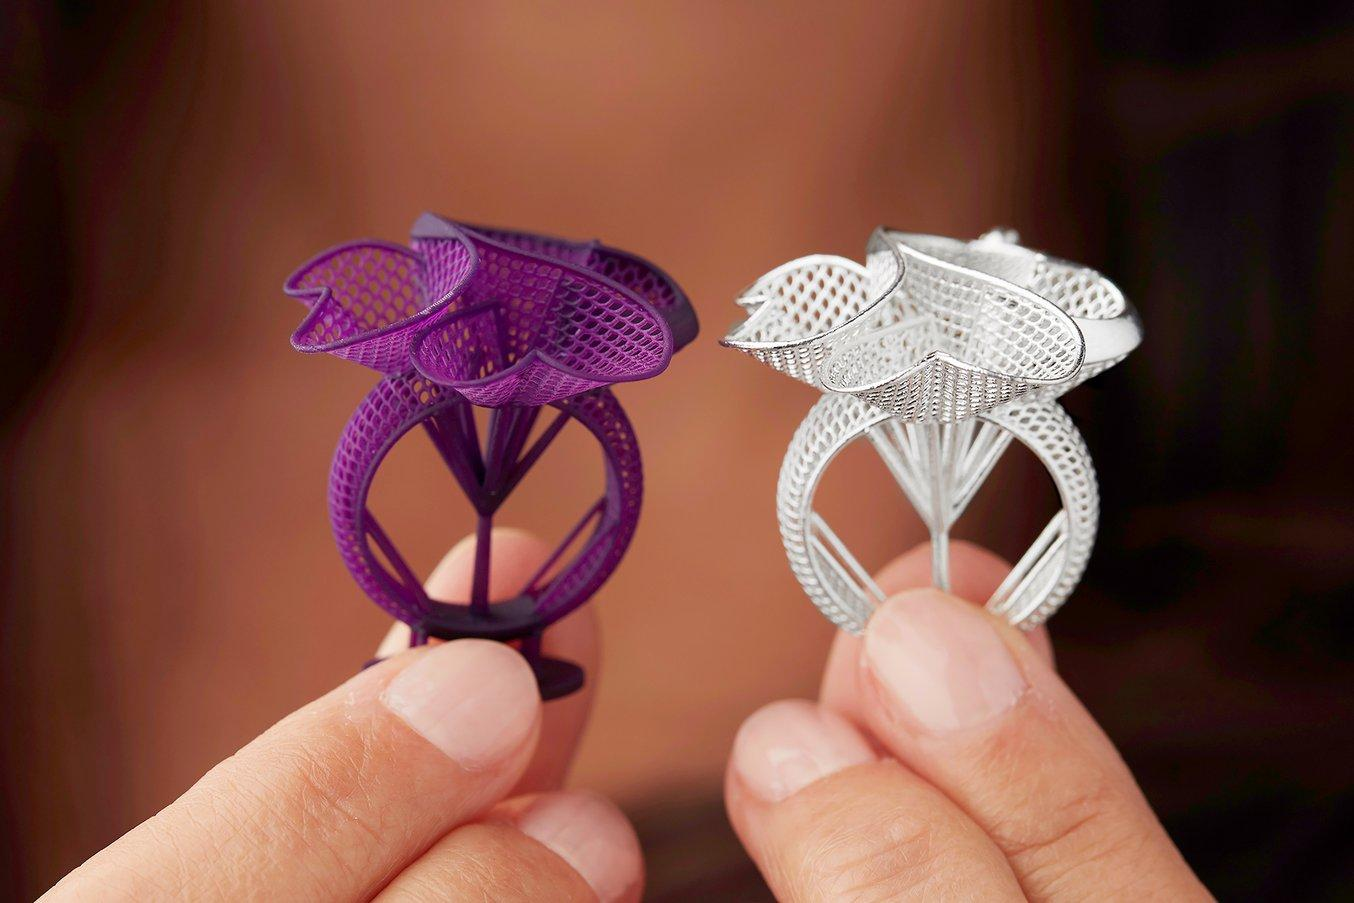 jewelry - rings molds - castable wax